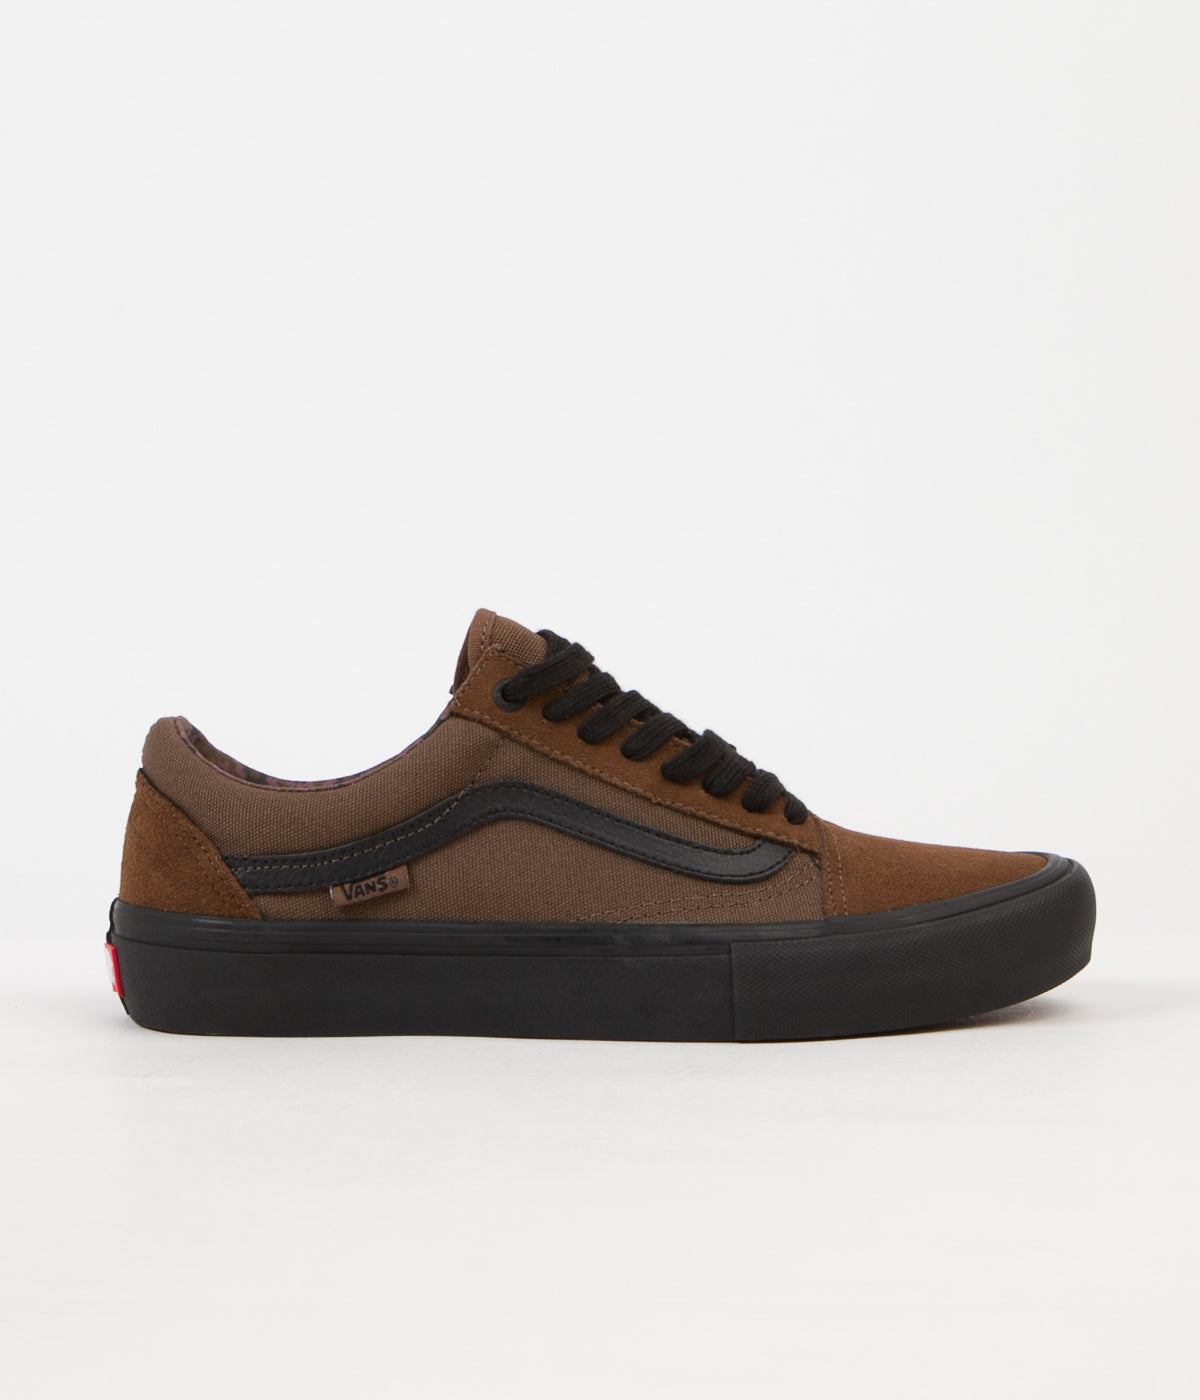 Vans Old Skool Pro (Dakota Roche) Shoes Teak Black